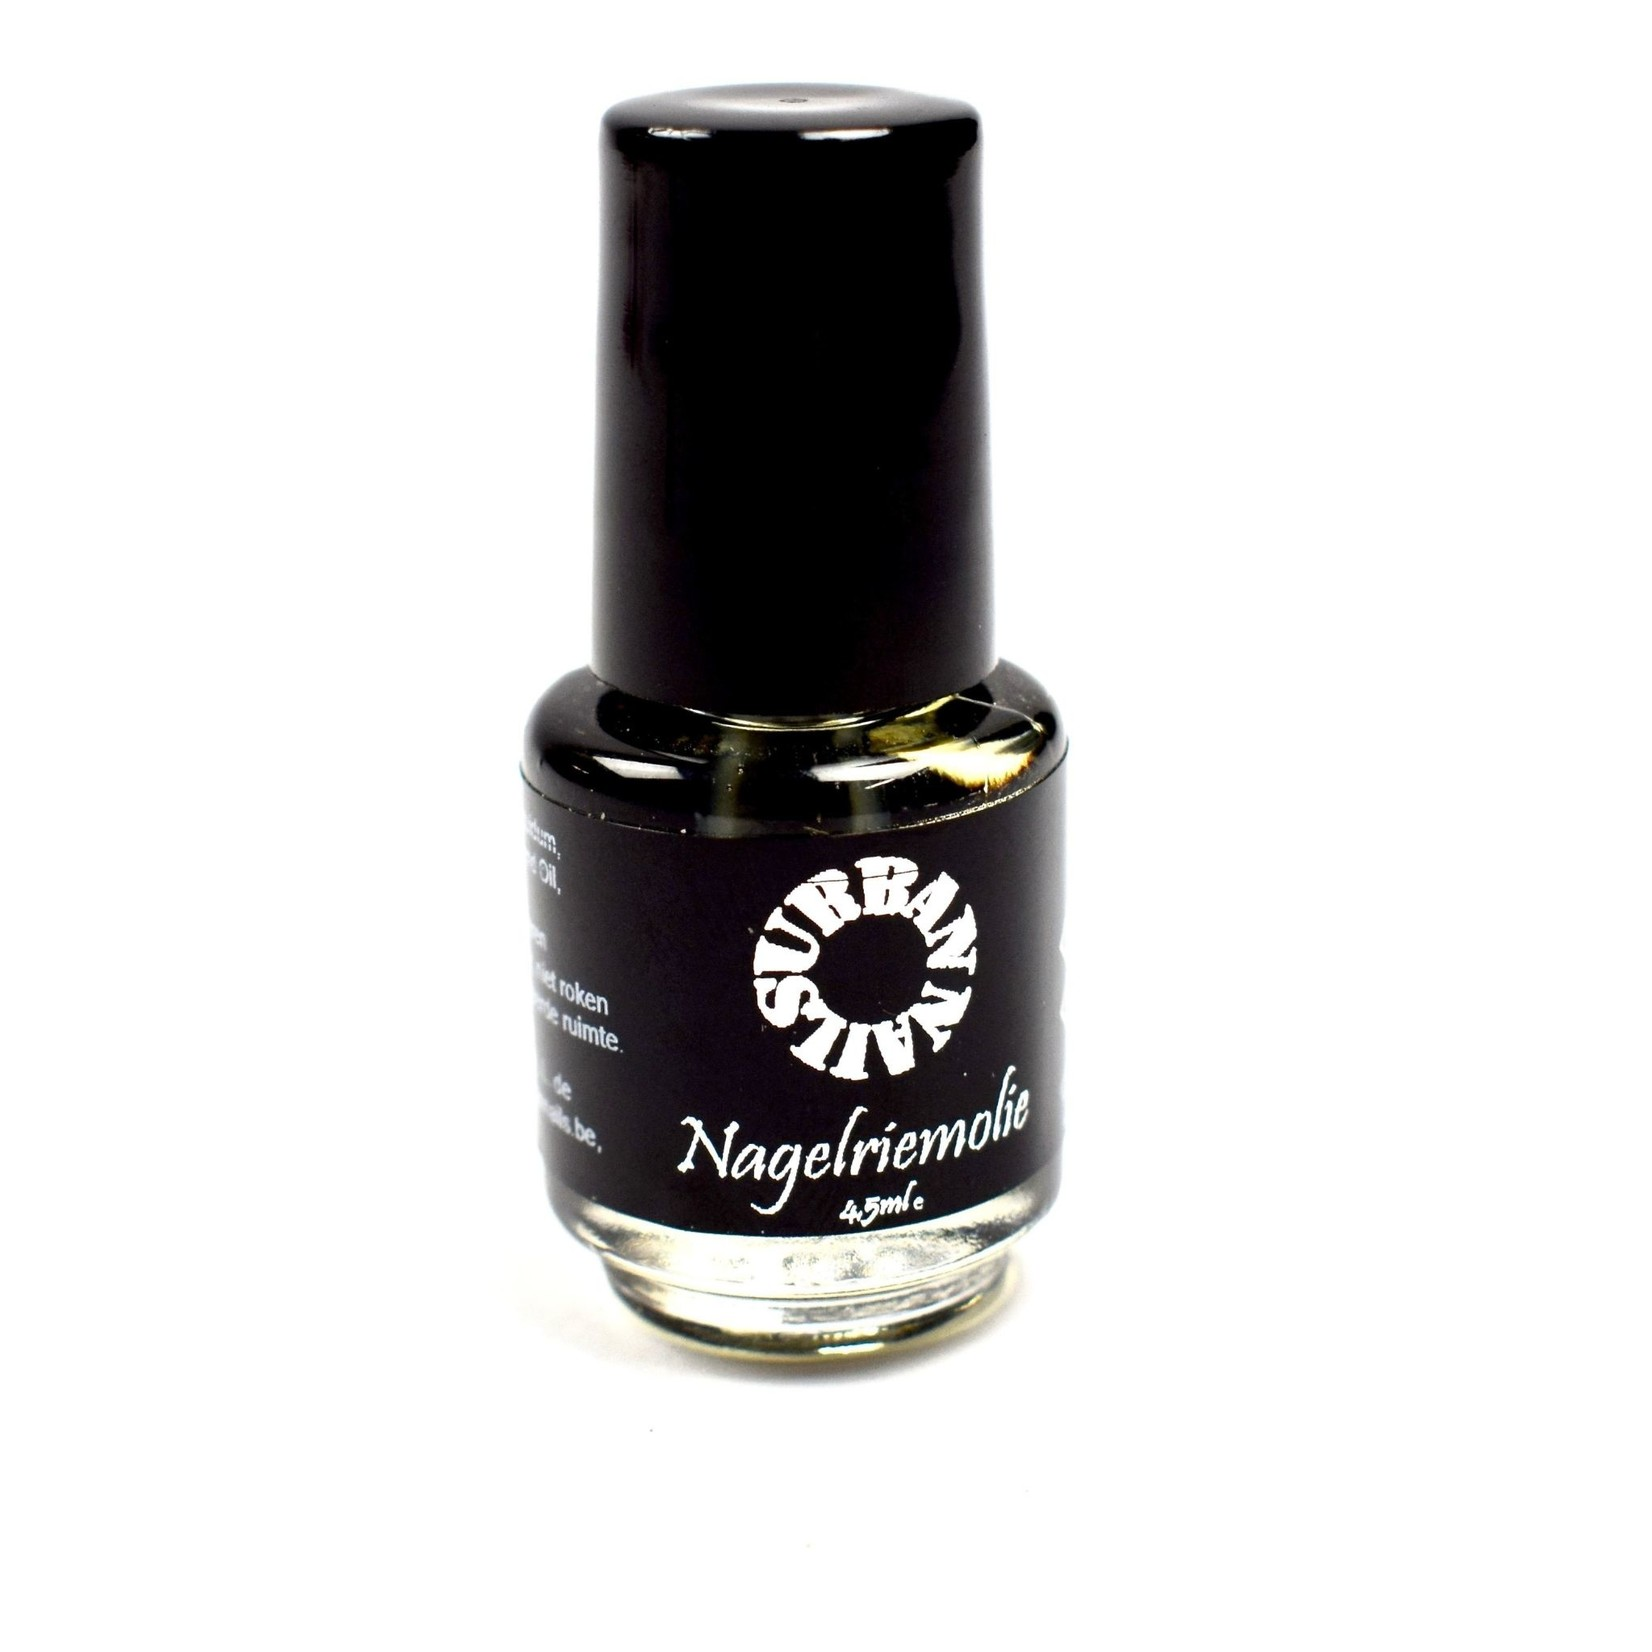 Urban Nails Nagelriem olie 4,5 ml